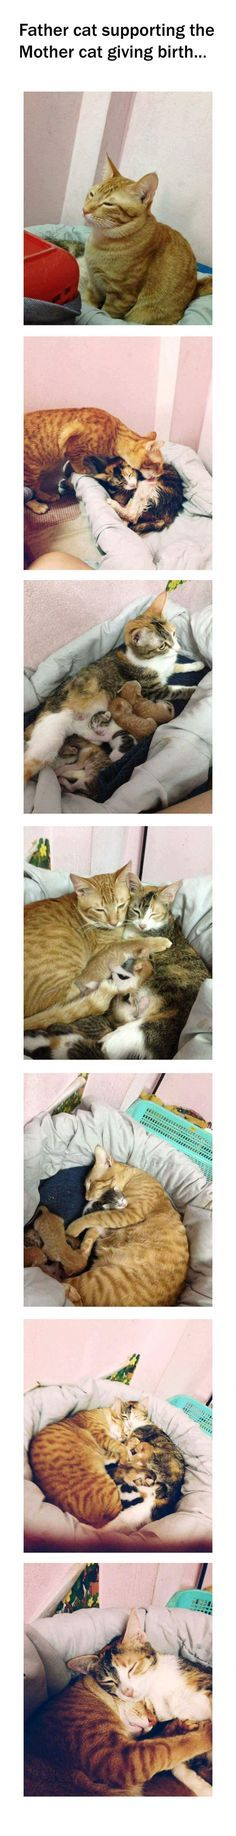 Father cat supporting mother cat while she gives birth